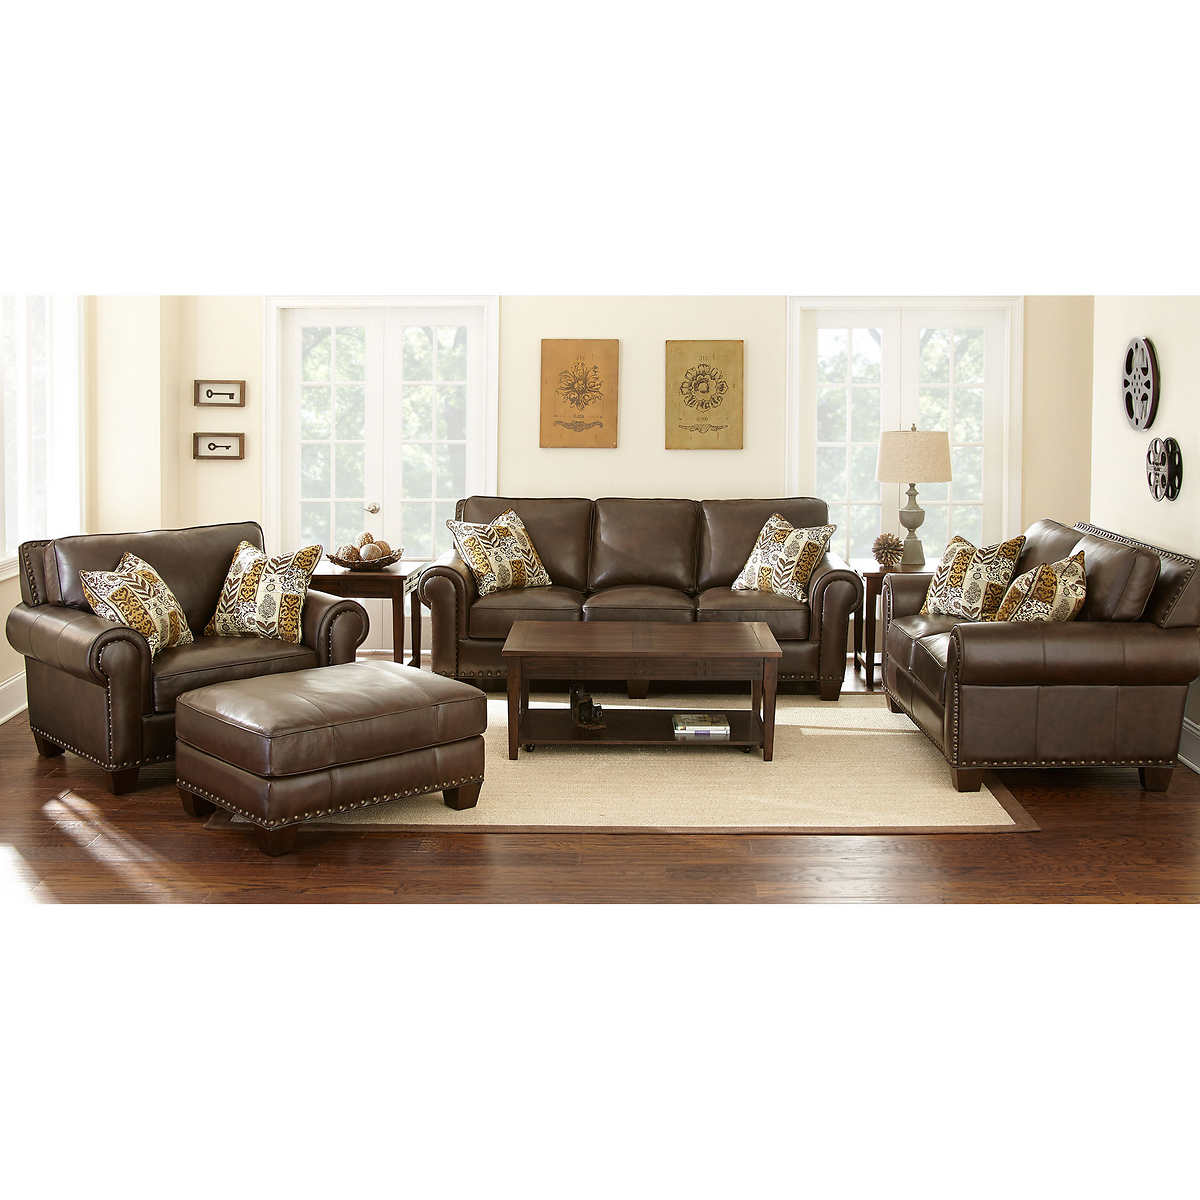 Top Grain Leather Sofa Costco Leather Sofas Sectionals